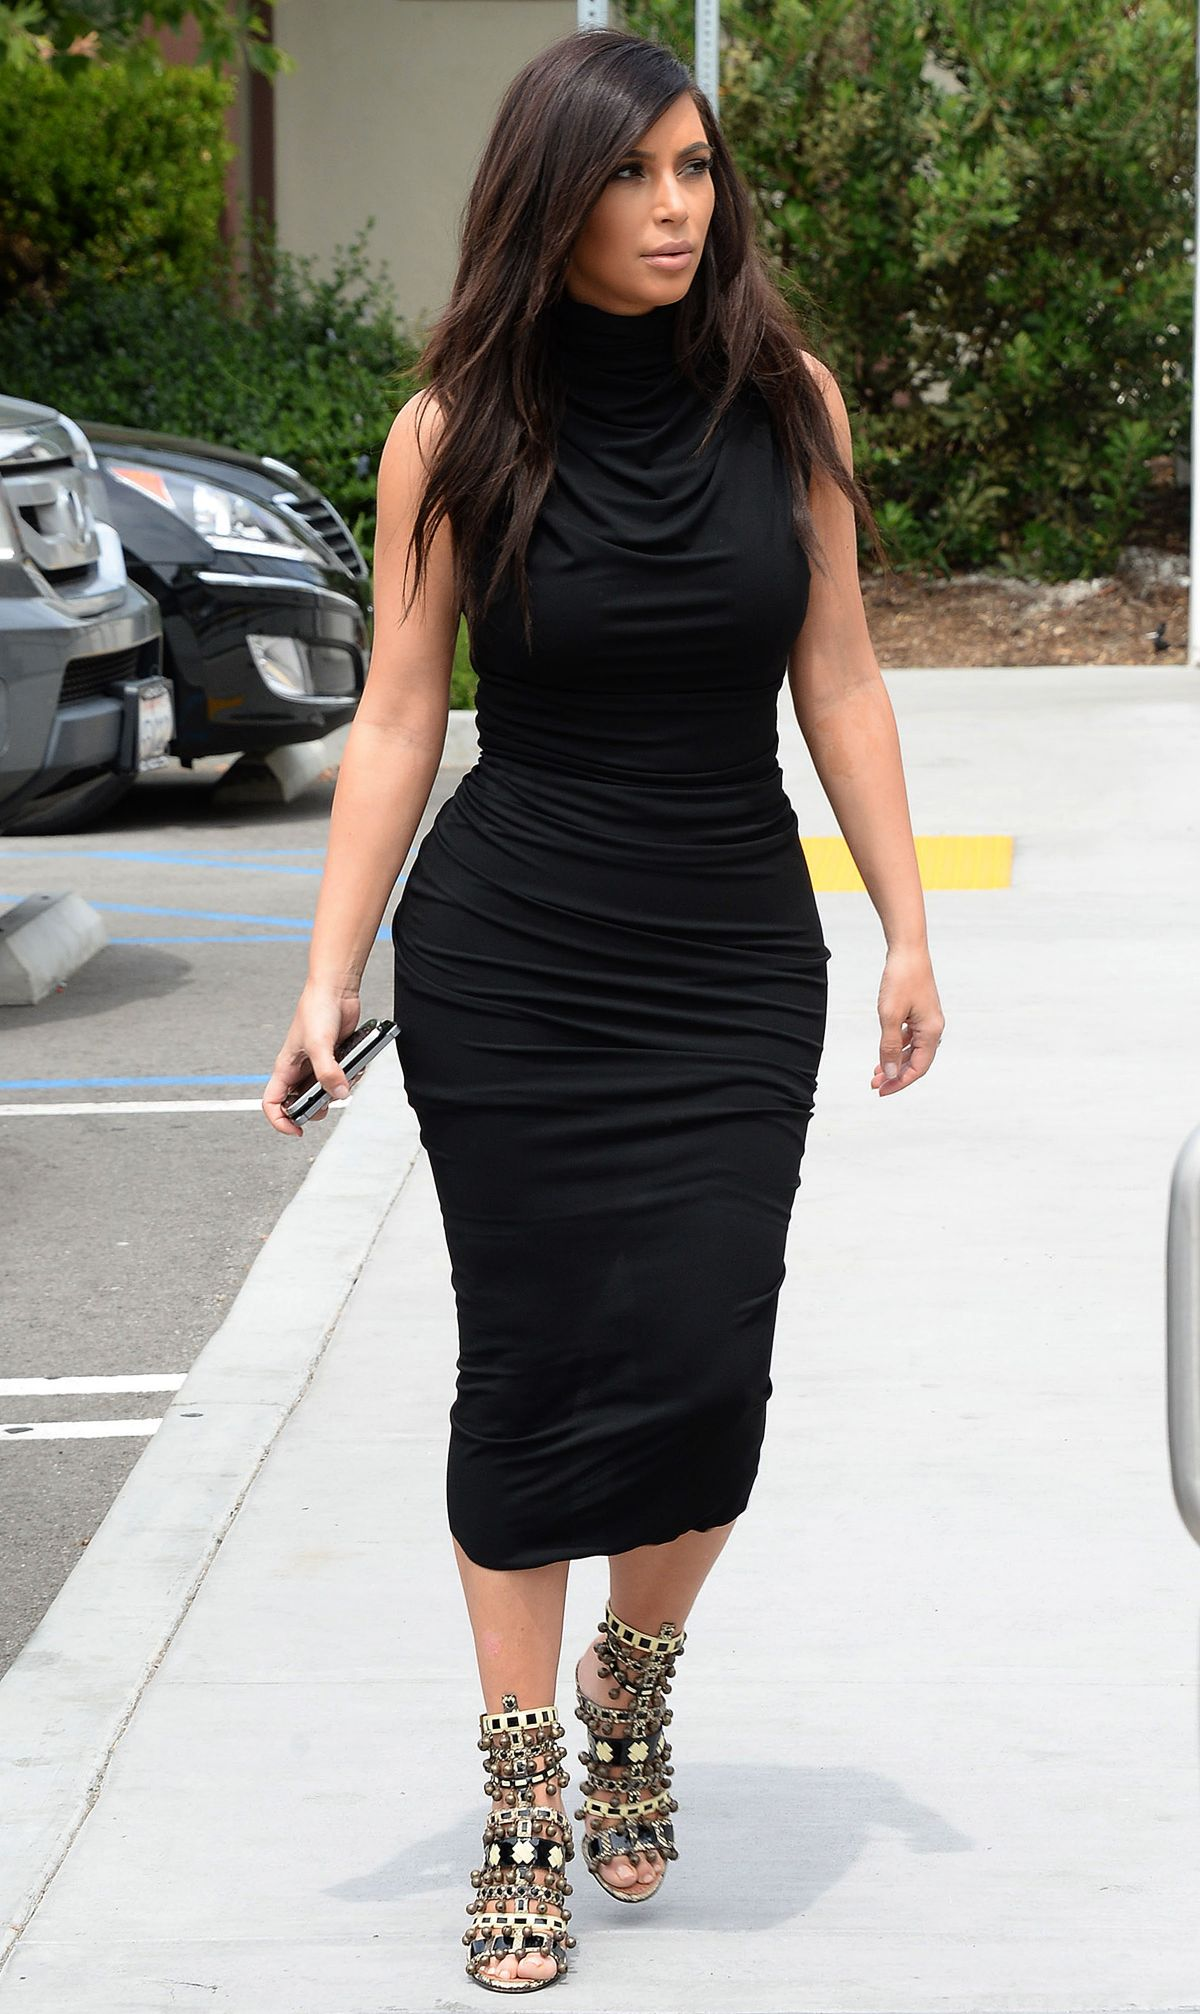 KIM KARDASHIAN on the Set of Keeping Up with Kardashian in Los Angeles